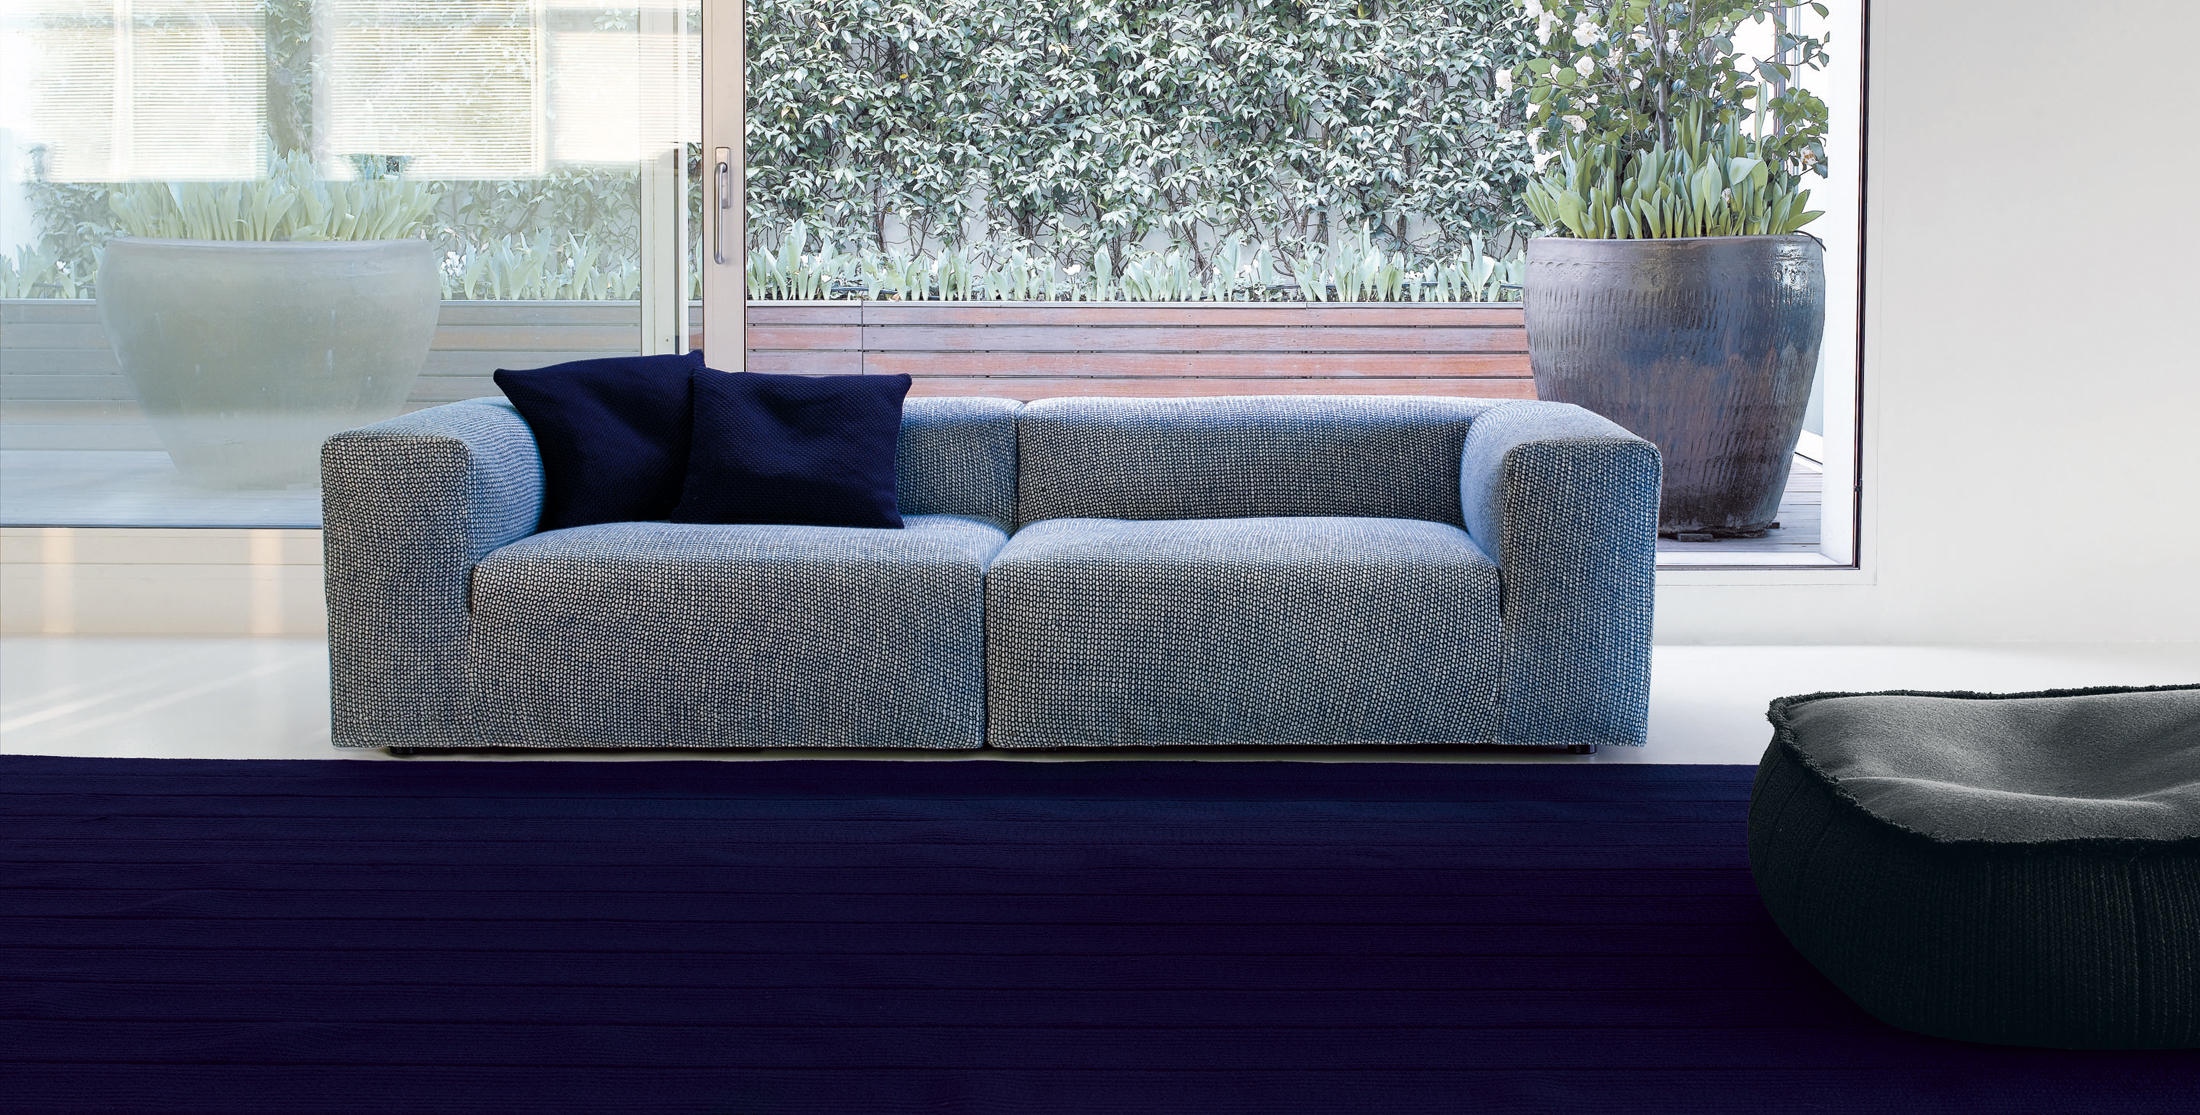 Atollo m loungesofas von paola lenti architonic for Prostoria divani